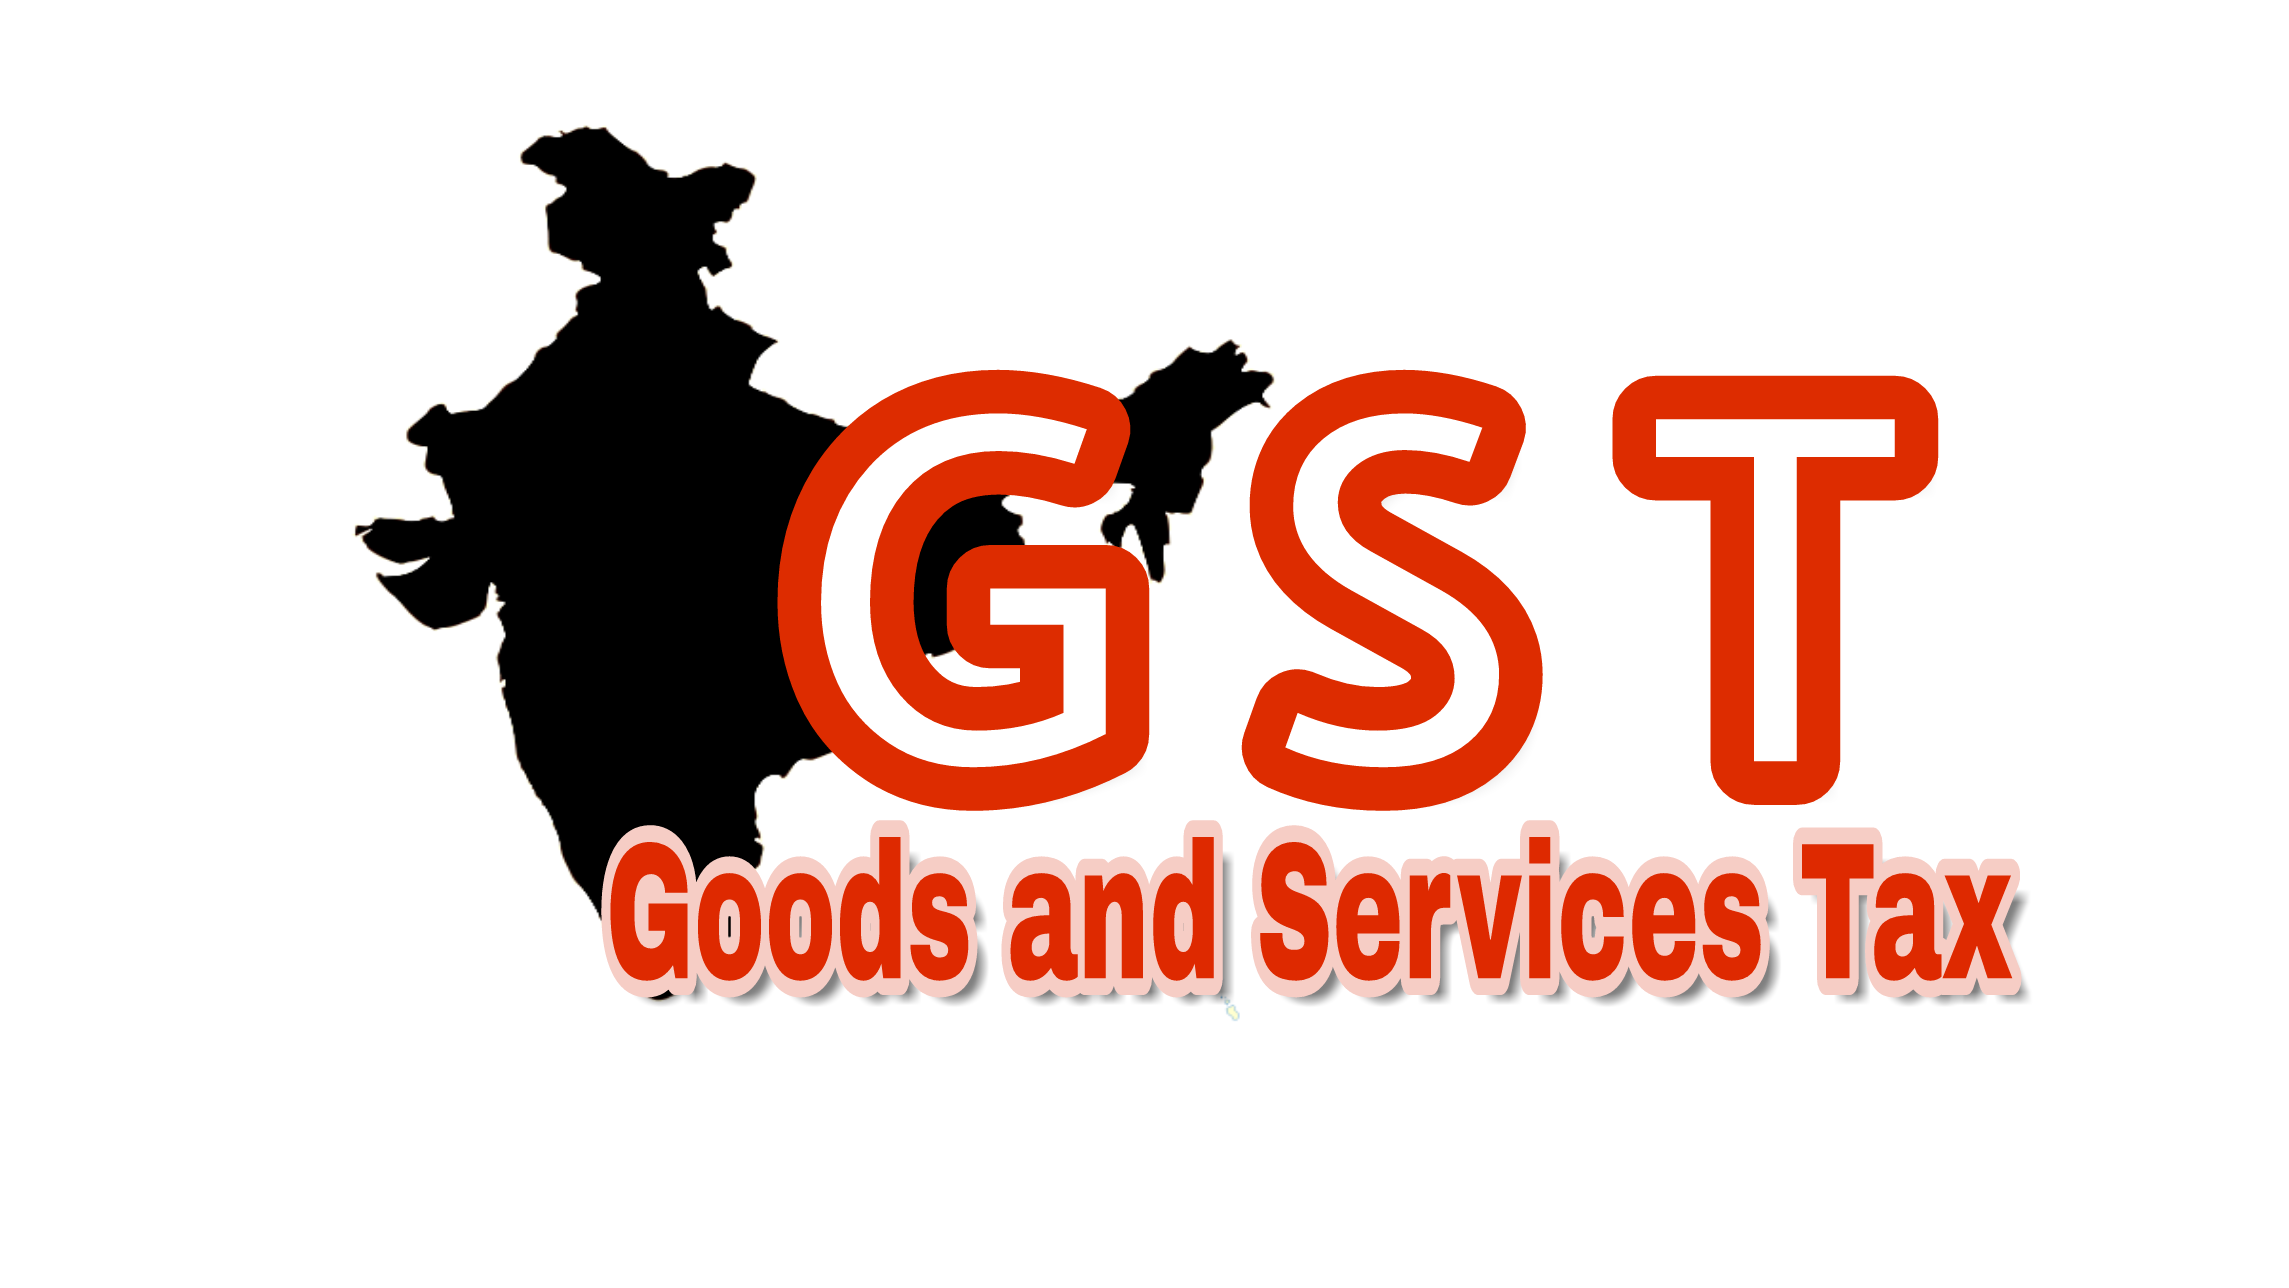 However, finance and legal experts also said that while other countries have considered a single rate of GST, keeping in mind the vast gap in per capita income and the need for generating revenues, it may not be possible at this stage for India to consider it.